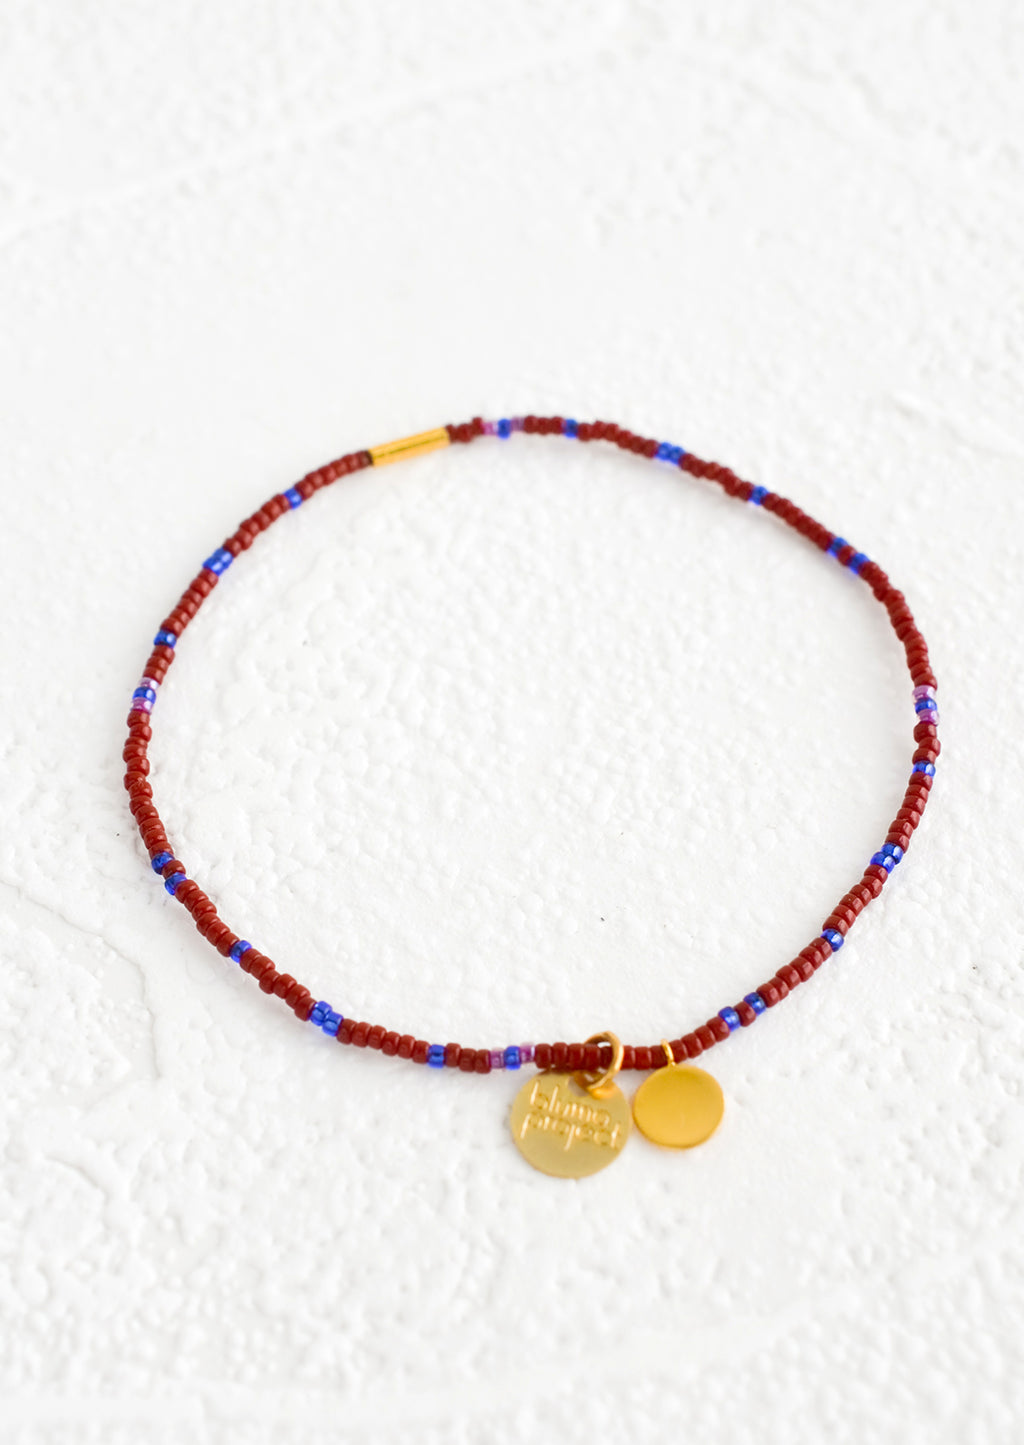 Wine / Cobalt: Seed bead bracelet in wine and blue with brass accents